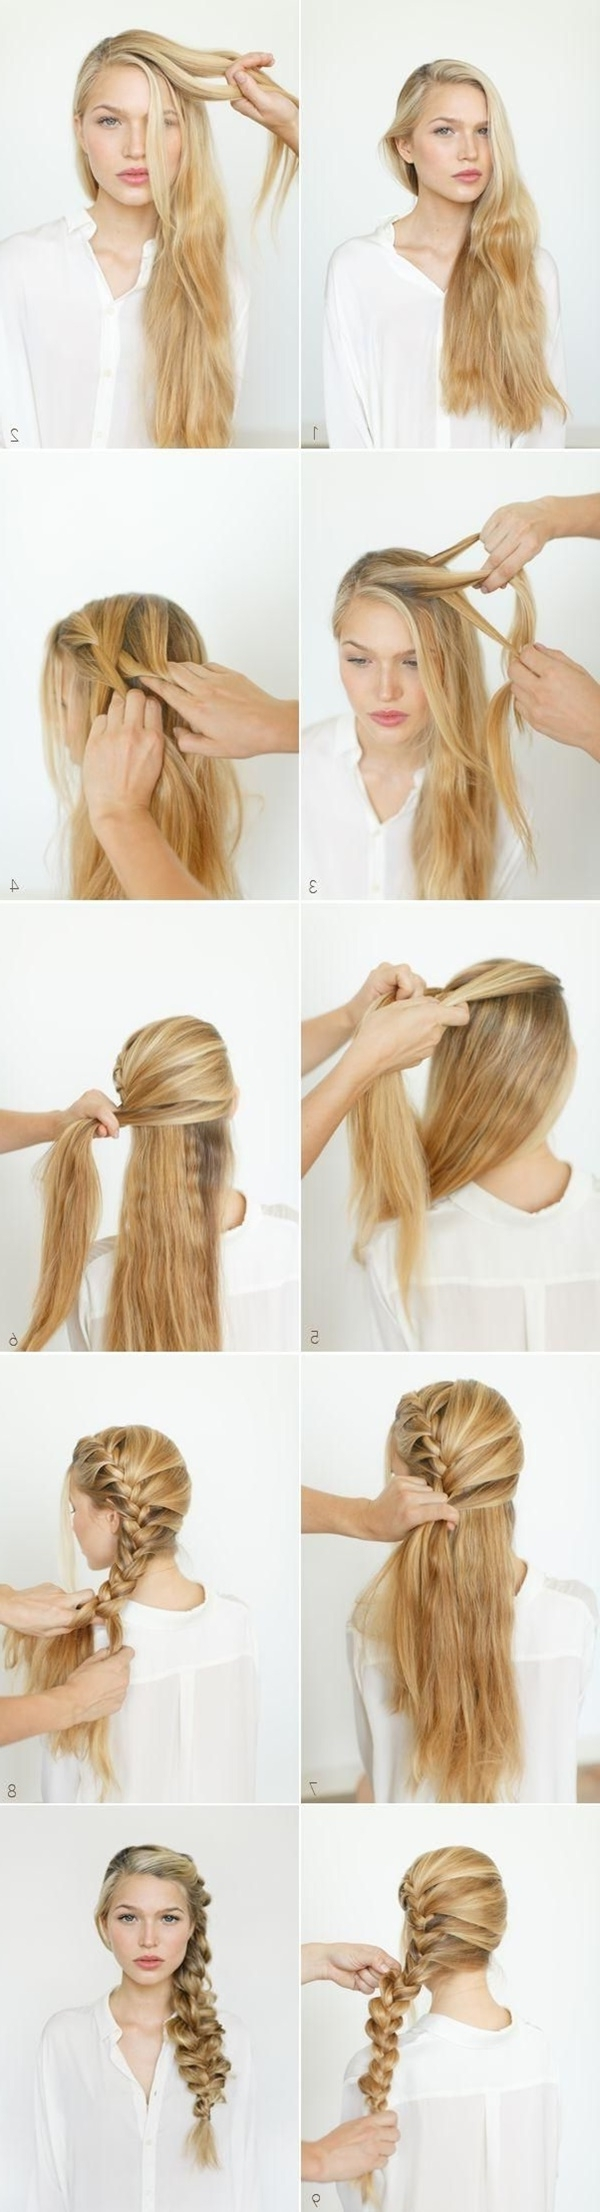 101 Romantic Braided Hairstyles For Long Hair And Medium Hair Throughout Famous Romantic Braid Hairstyles (View 5 of 15)